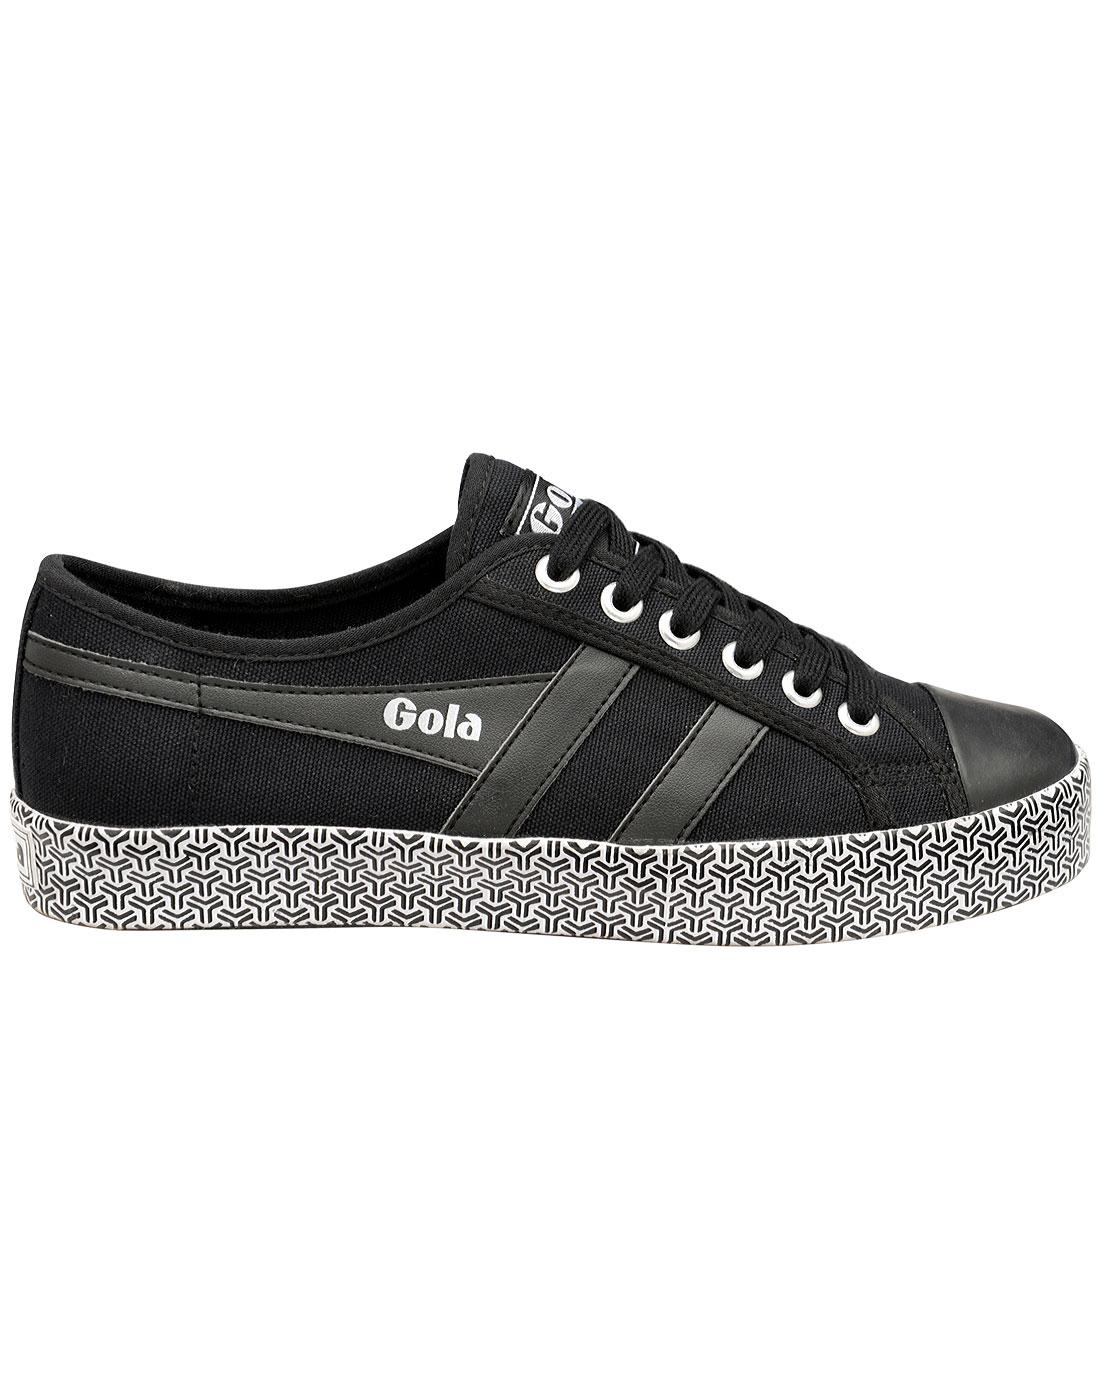 Coaster Metric GOLA Womens Retro Canvas Trainers